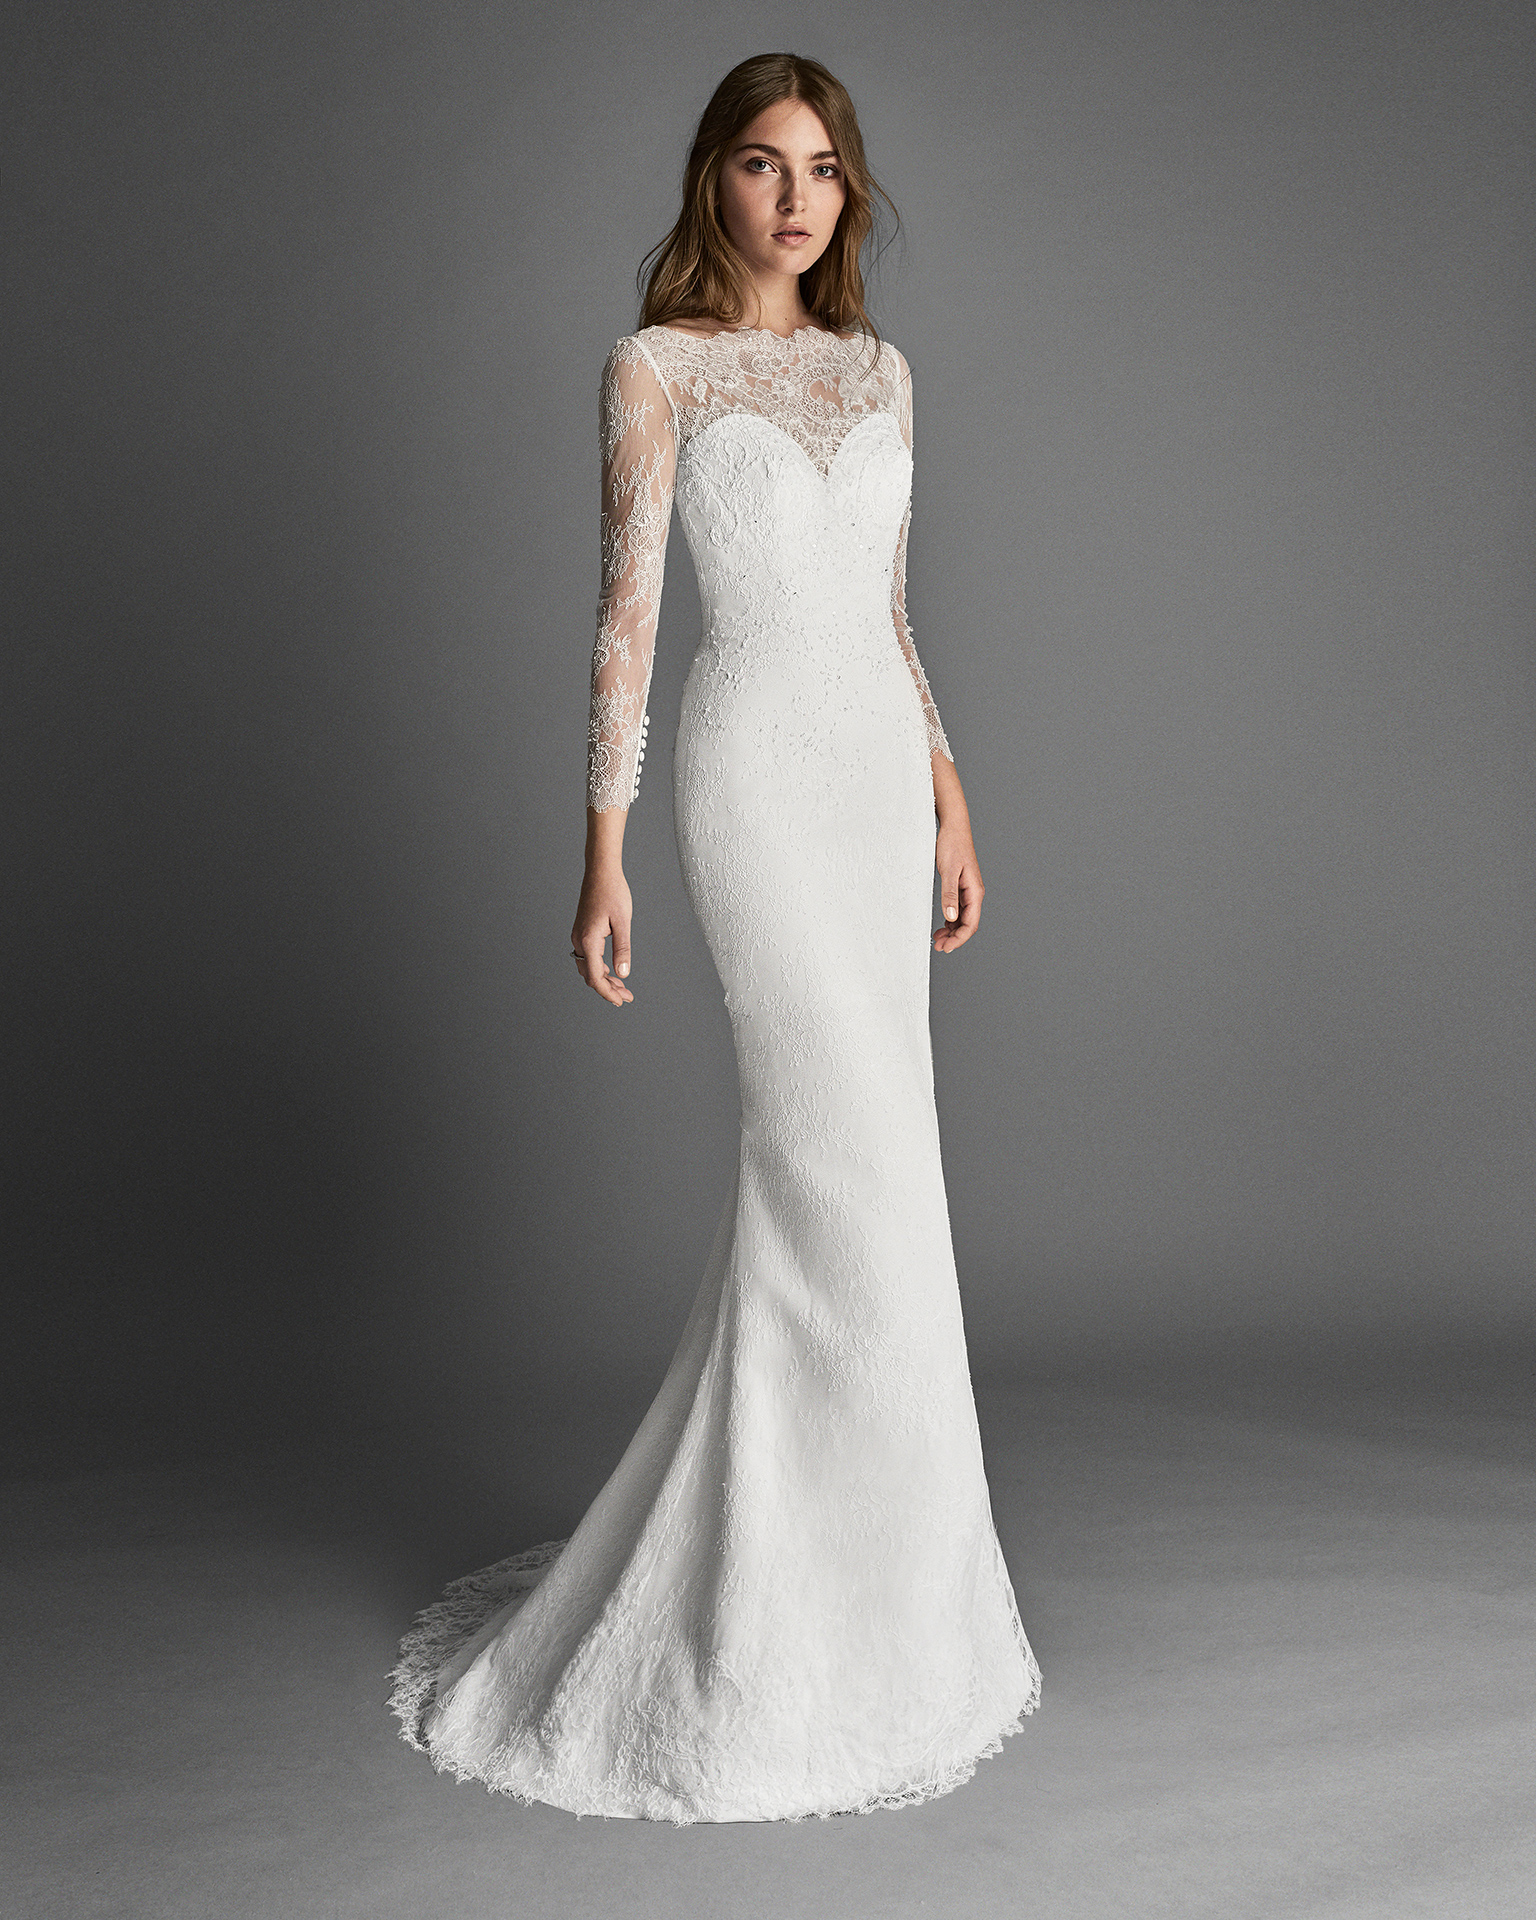 Princess-style beaded lace wedding dress with long sleeves and beaded lace back.